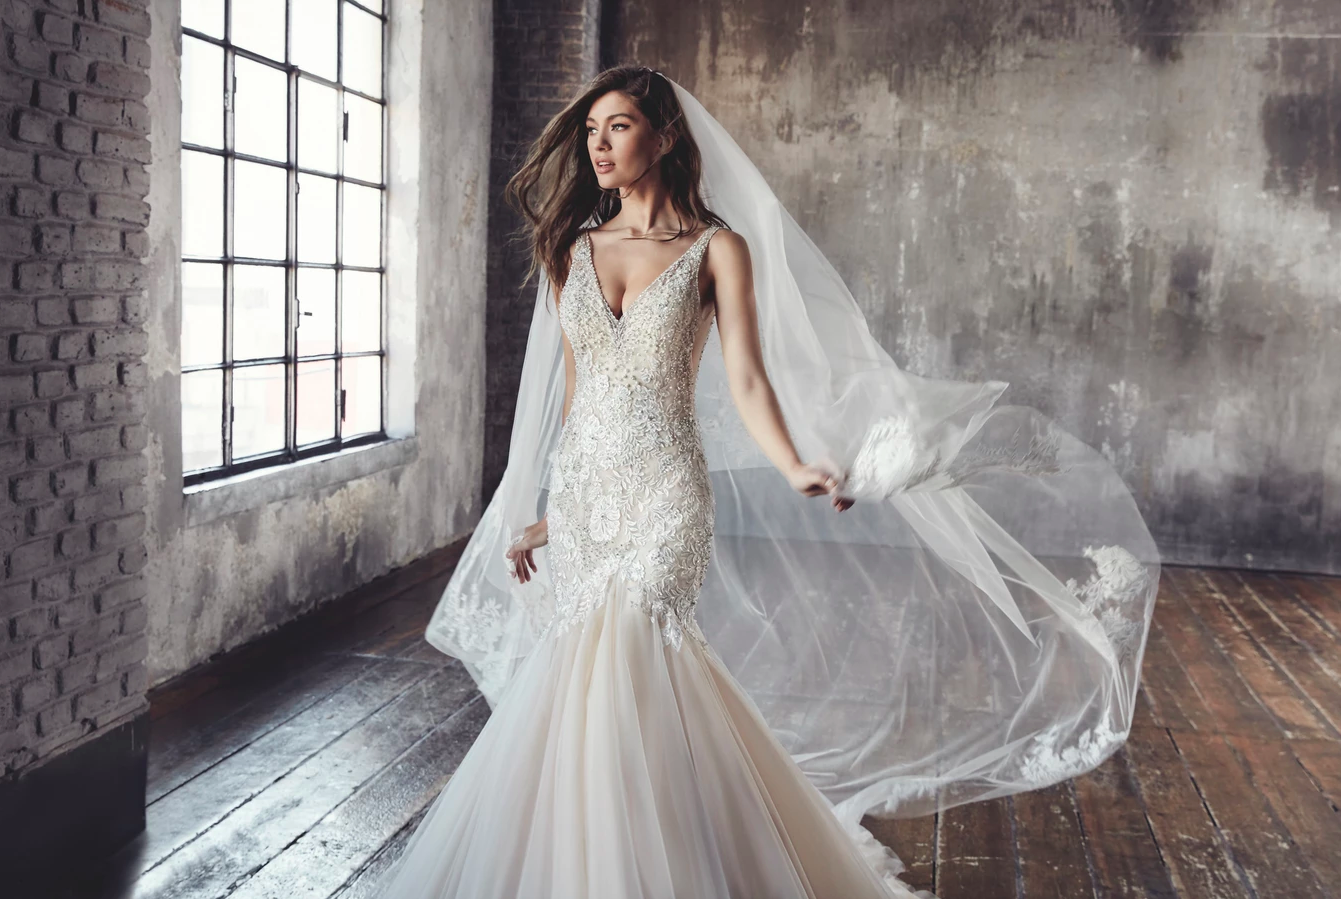 7 Best Bridal Boutiques In Hong Kong To Find Your Dream Wedding Dress